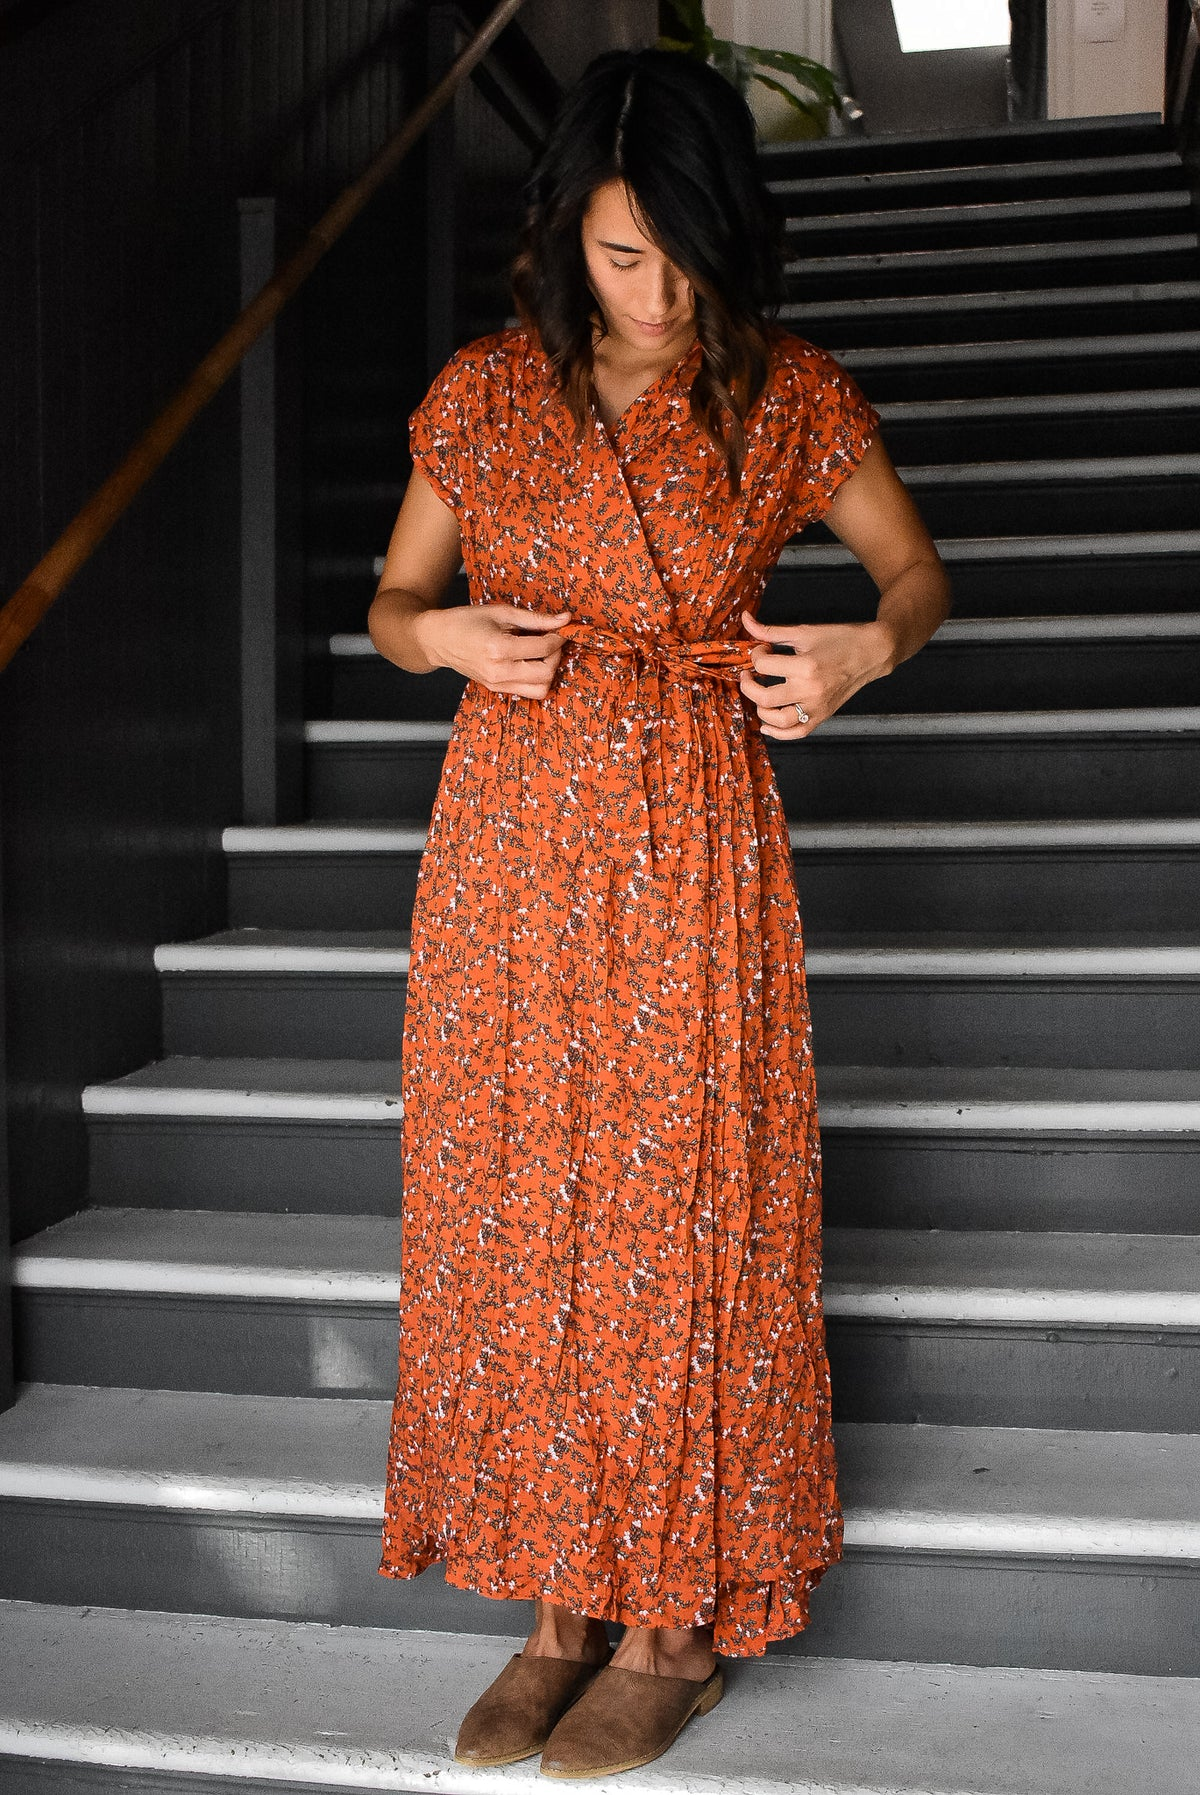 FLORAL MAXI WRAP DRESS - RED ORANGE